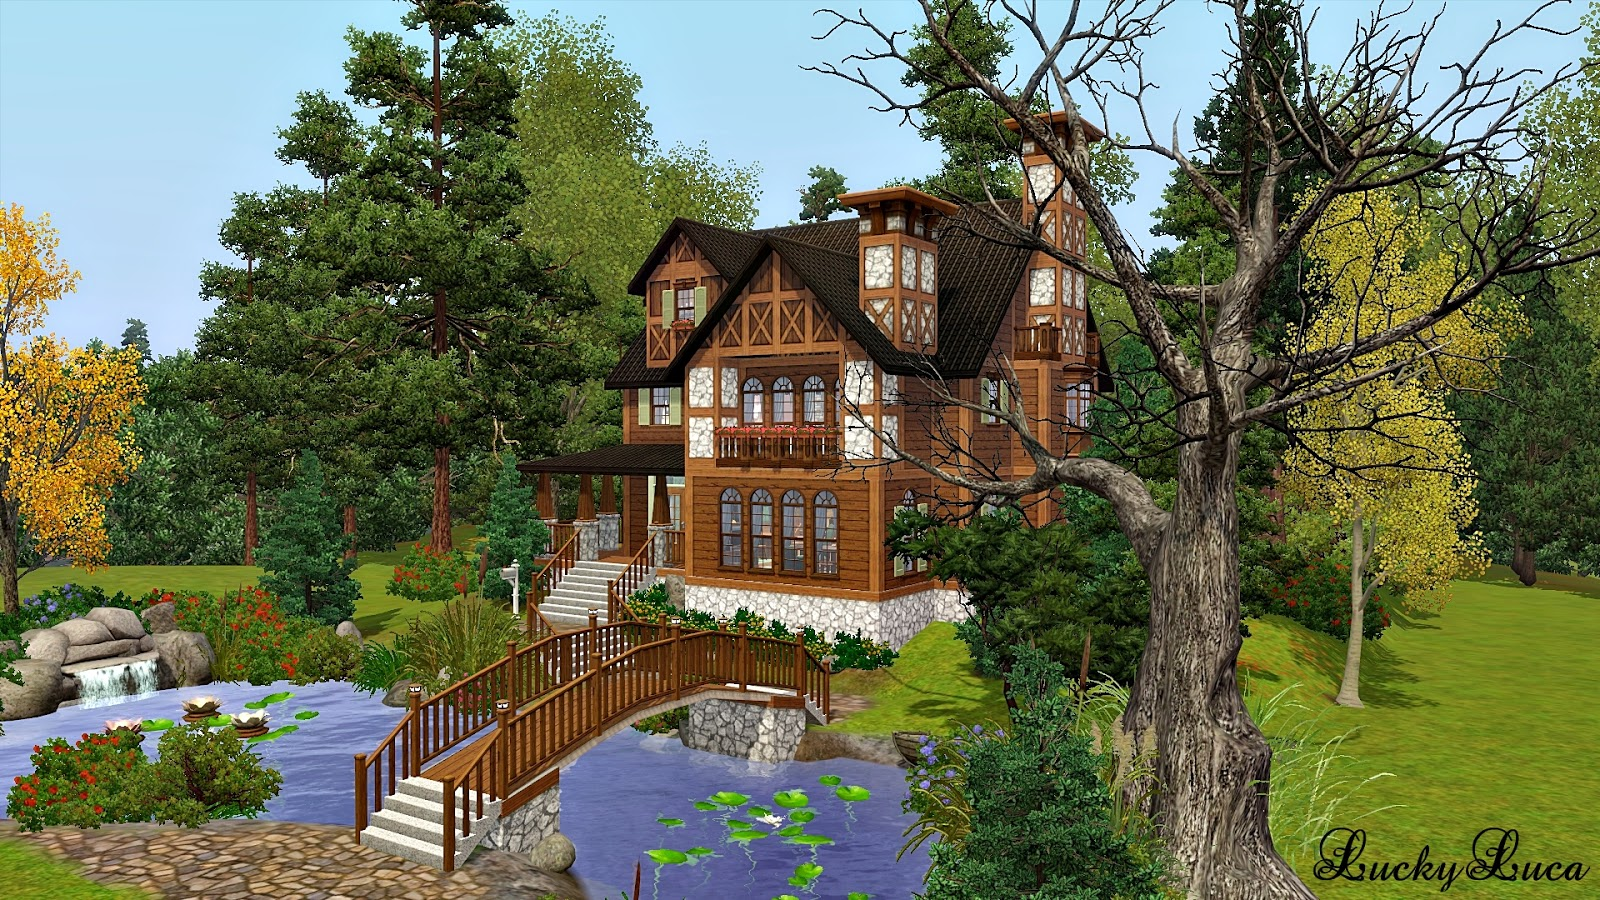 Hillside Brook Cottage by Lucky Luca